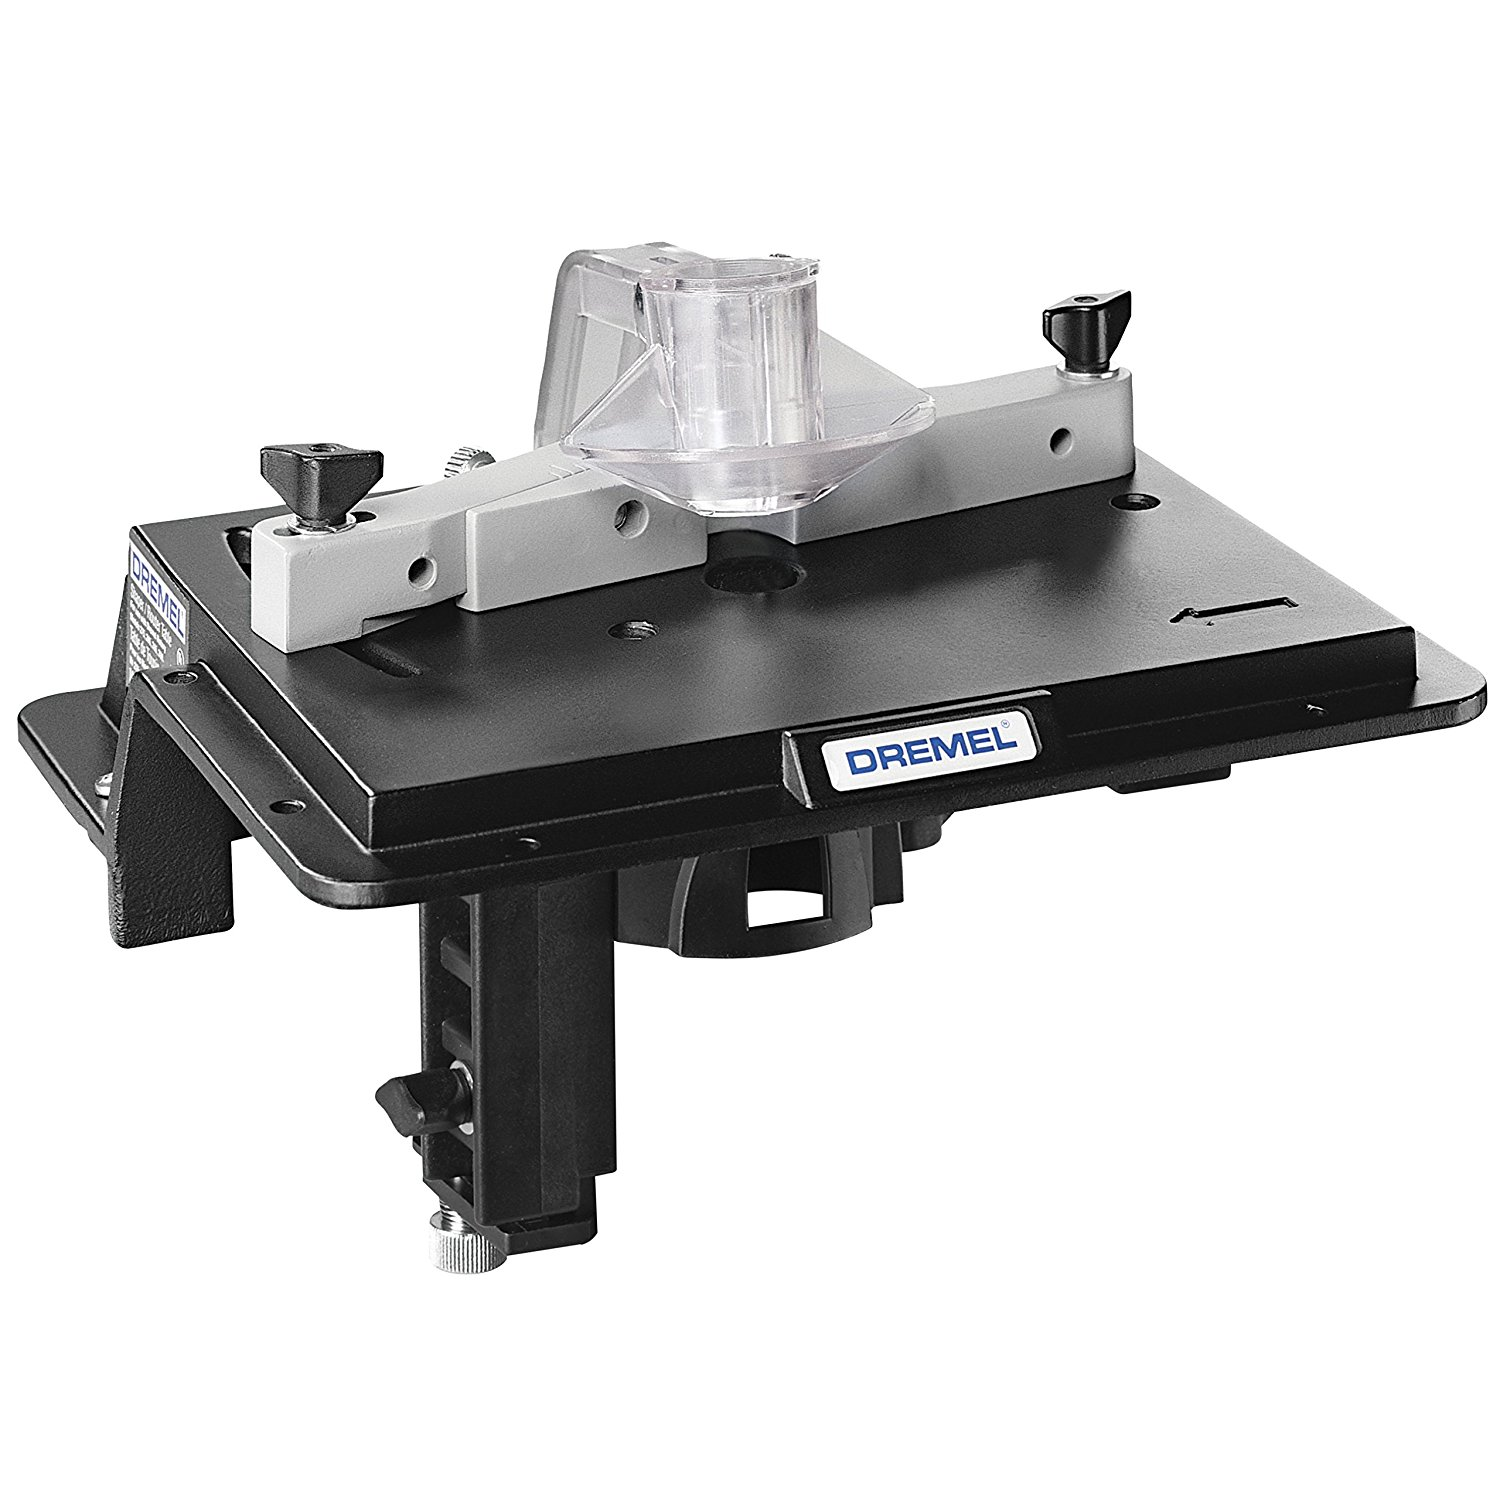 231 Shaper Router Table, Convert Dremel corded & cordless rotary tools into a bench... by